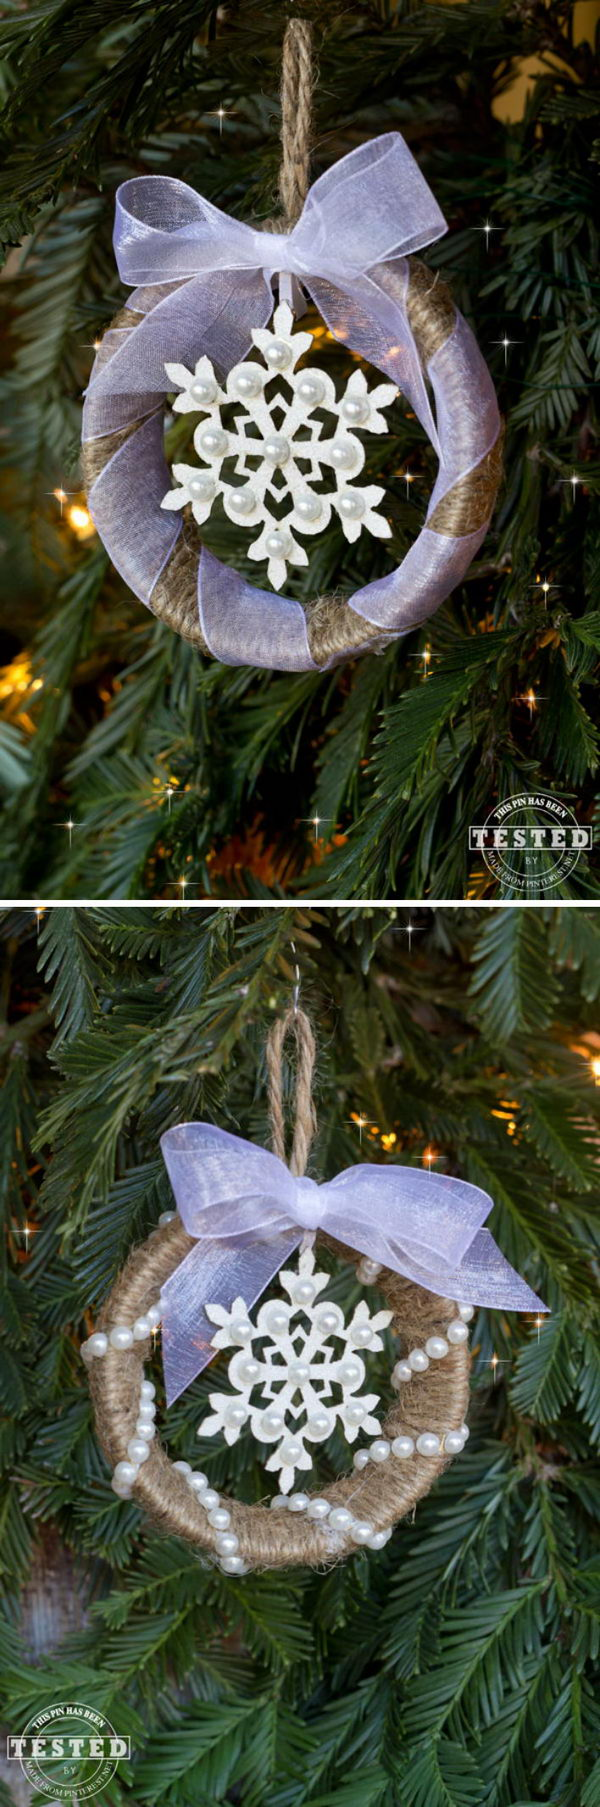 DIY Pearl Bead Mason Jar Ring Ornament.